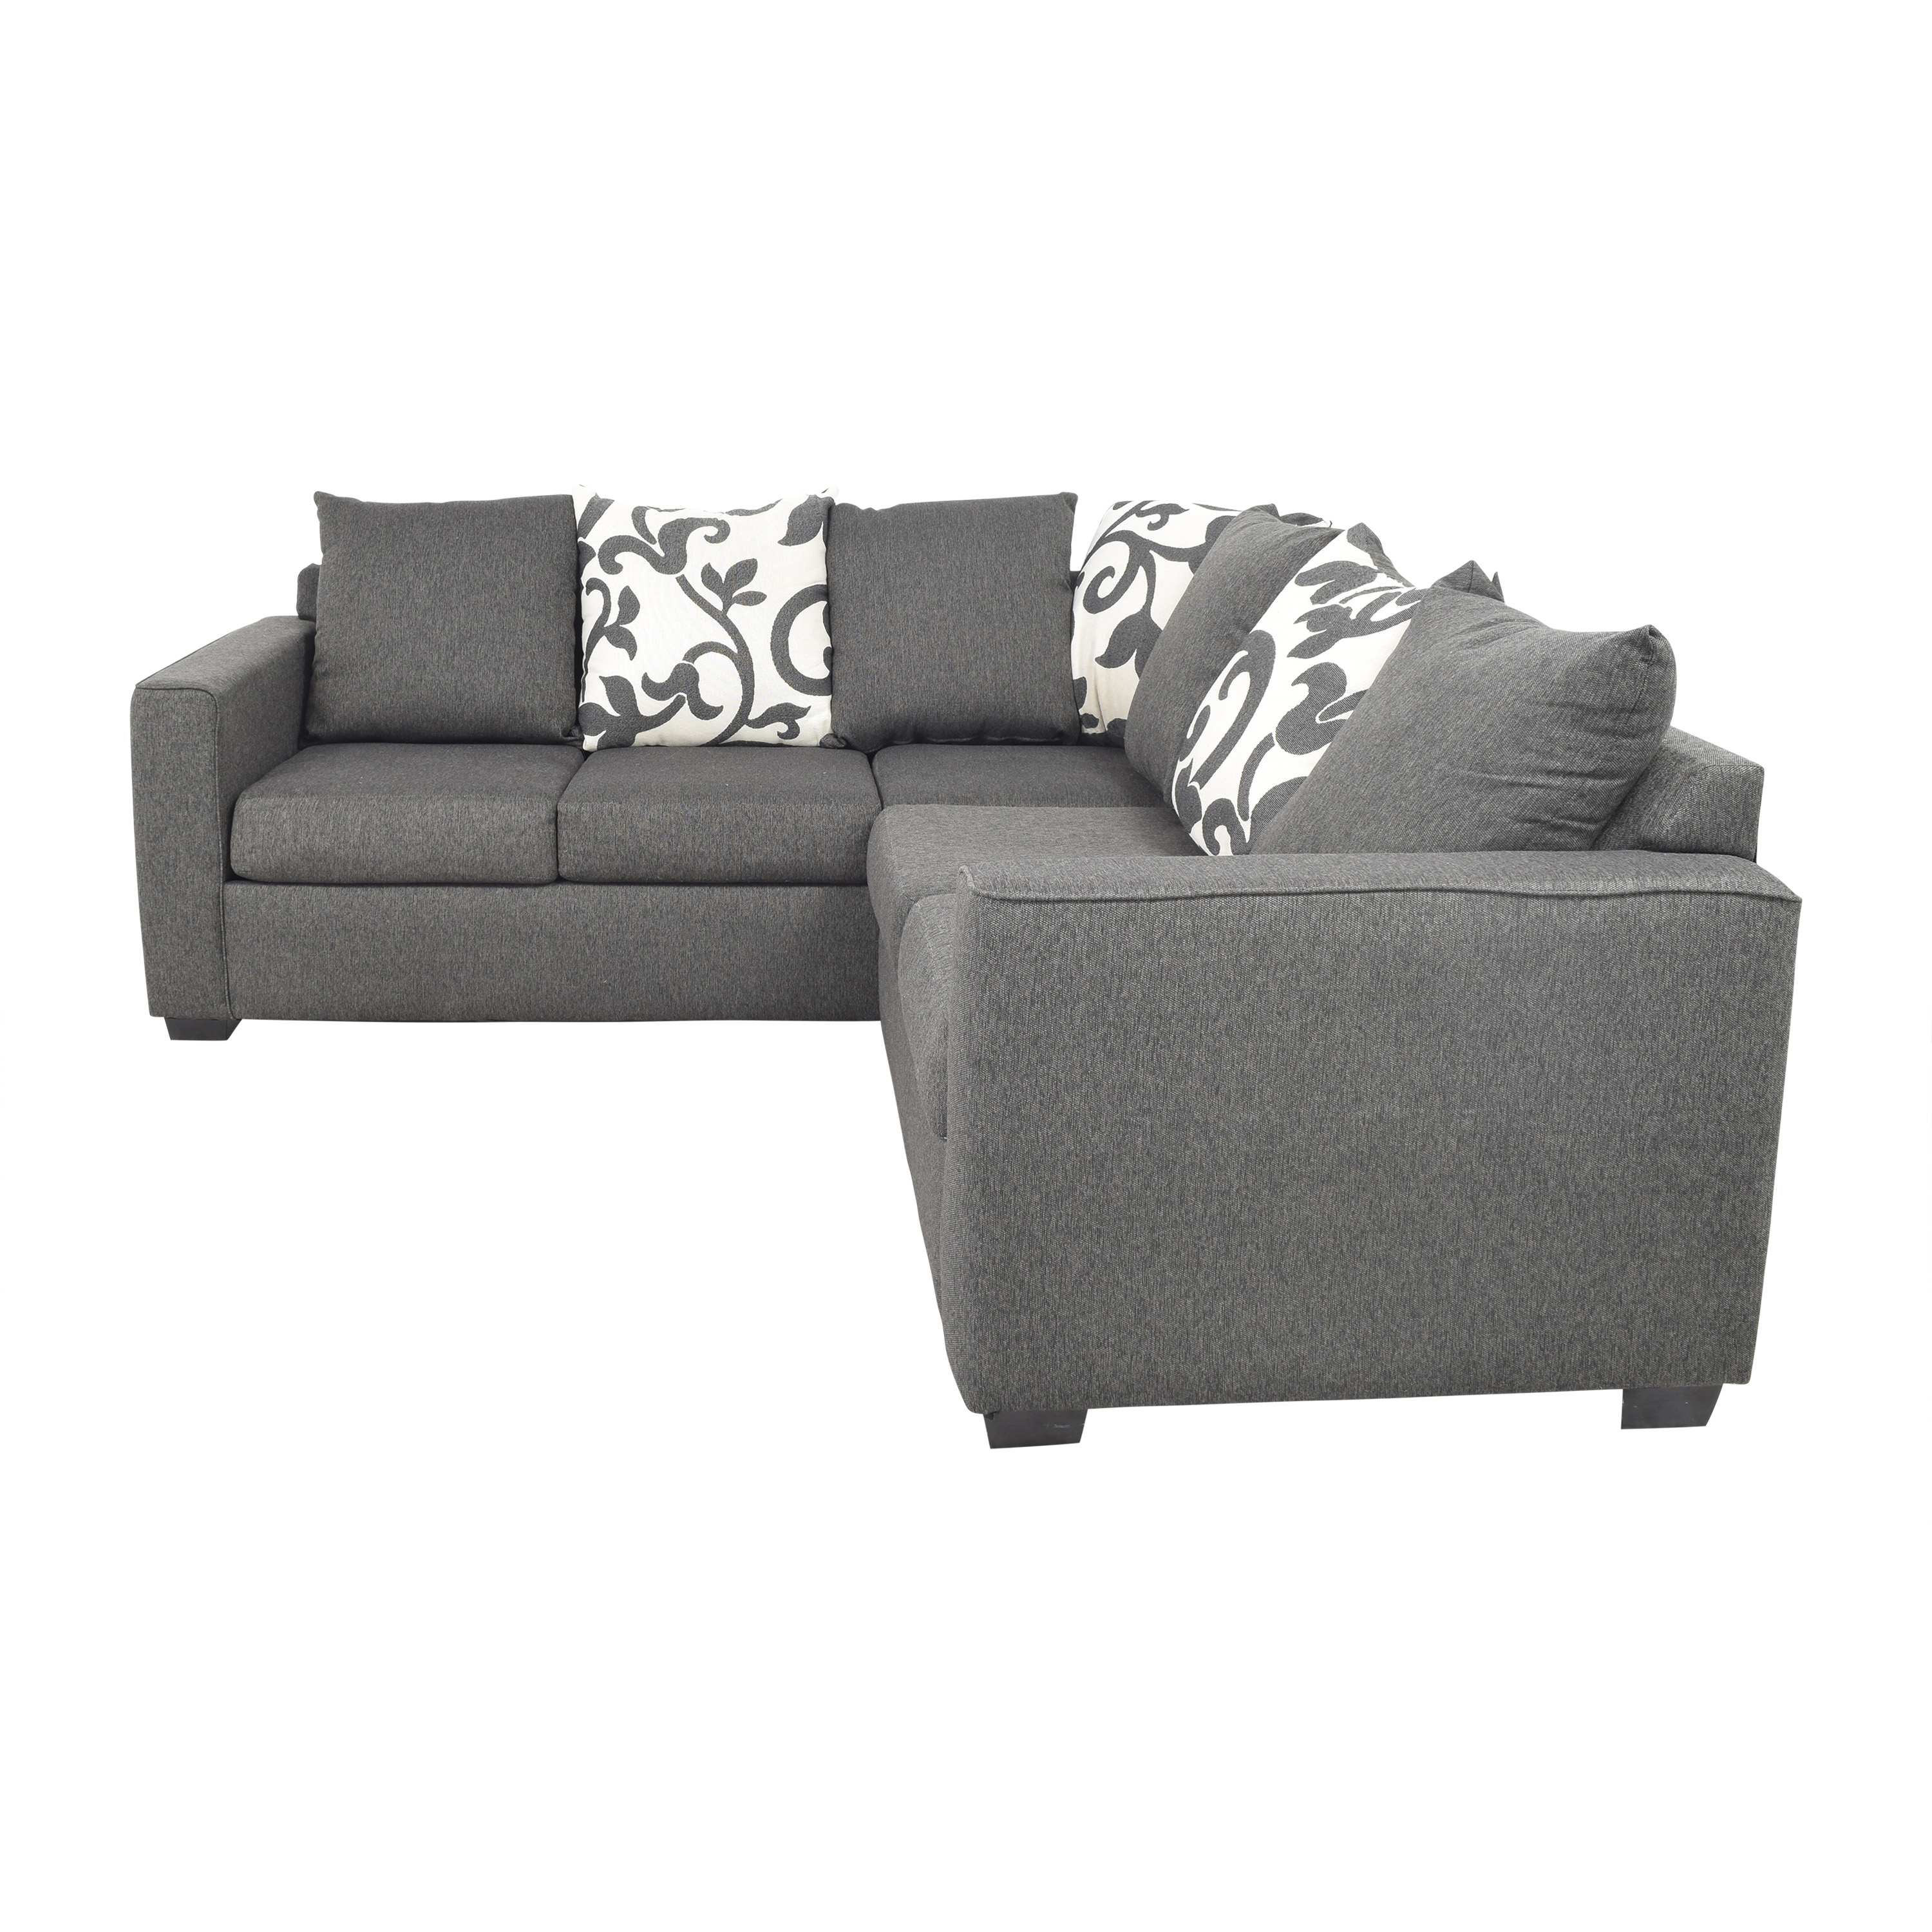 Furniture of America Furniture of America Lleida Two Piece Sectional Sofa on sale